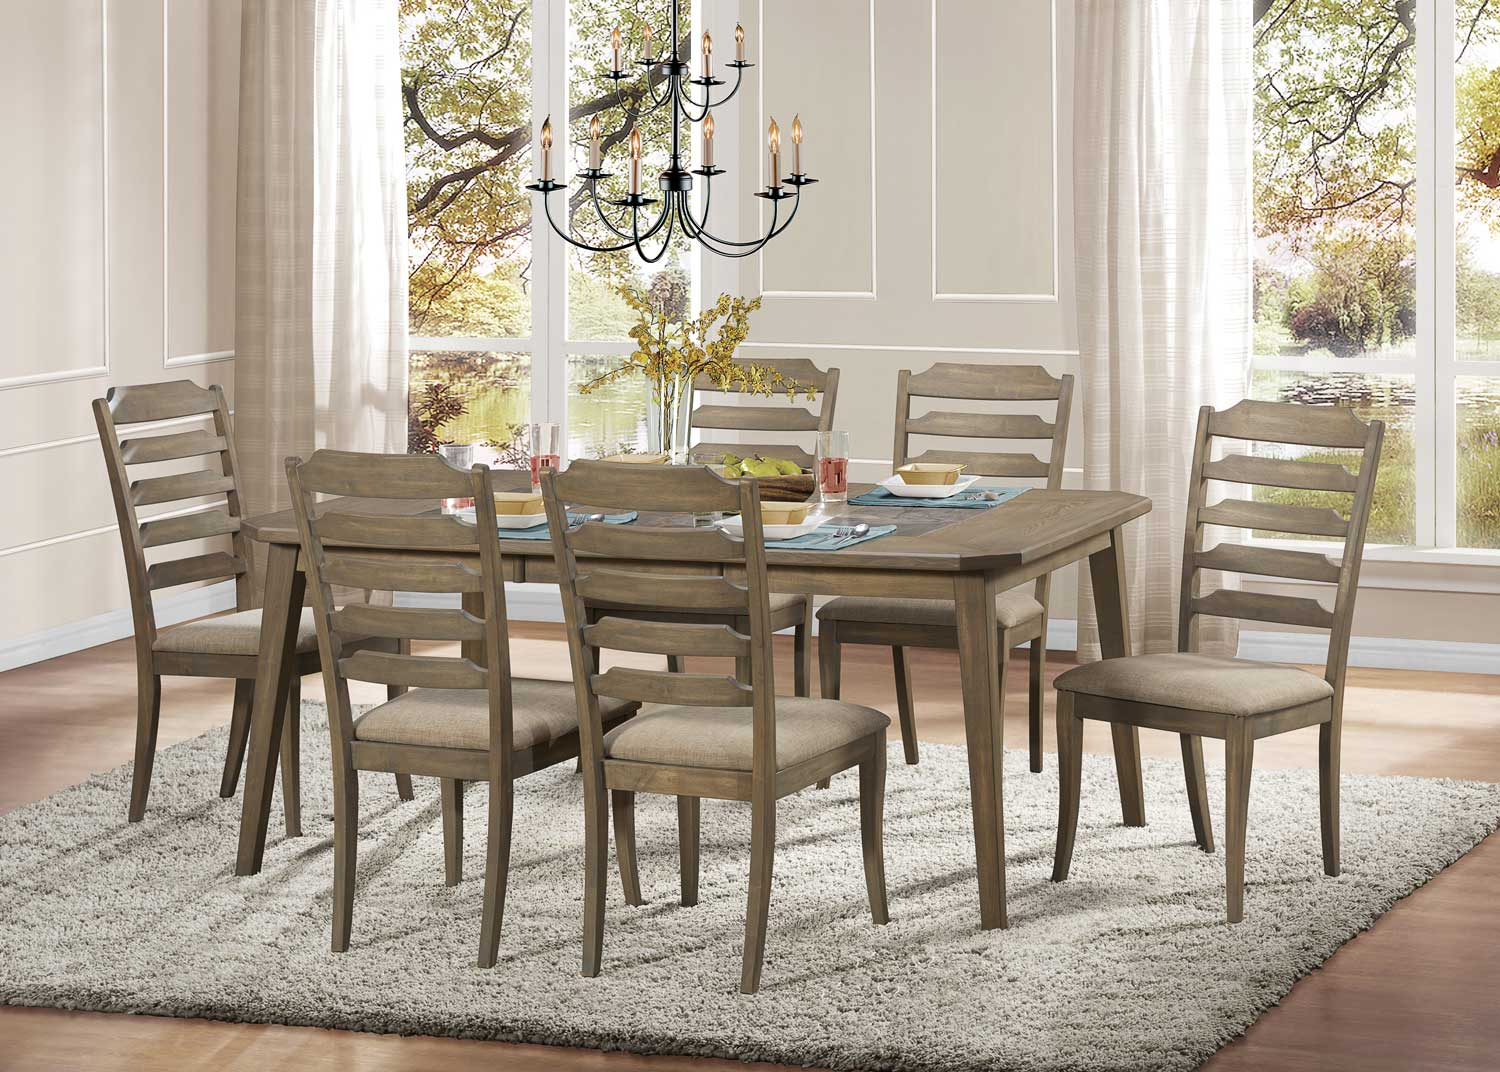 Homelegance Geranium Dining Set Driftwood 5102 Din Room Chairs